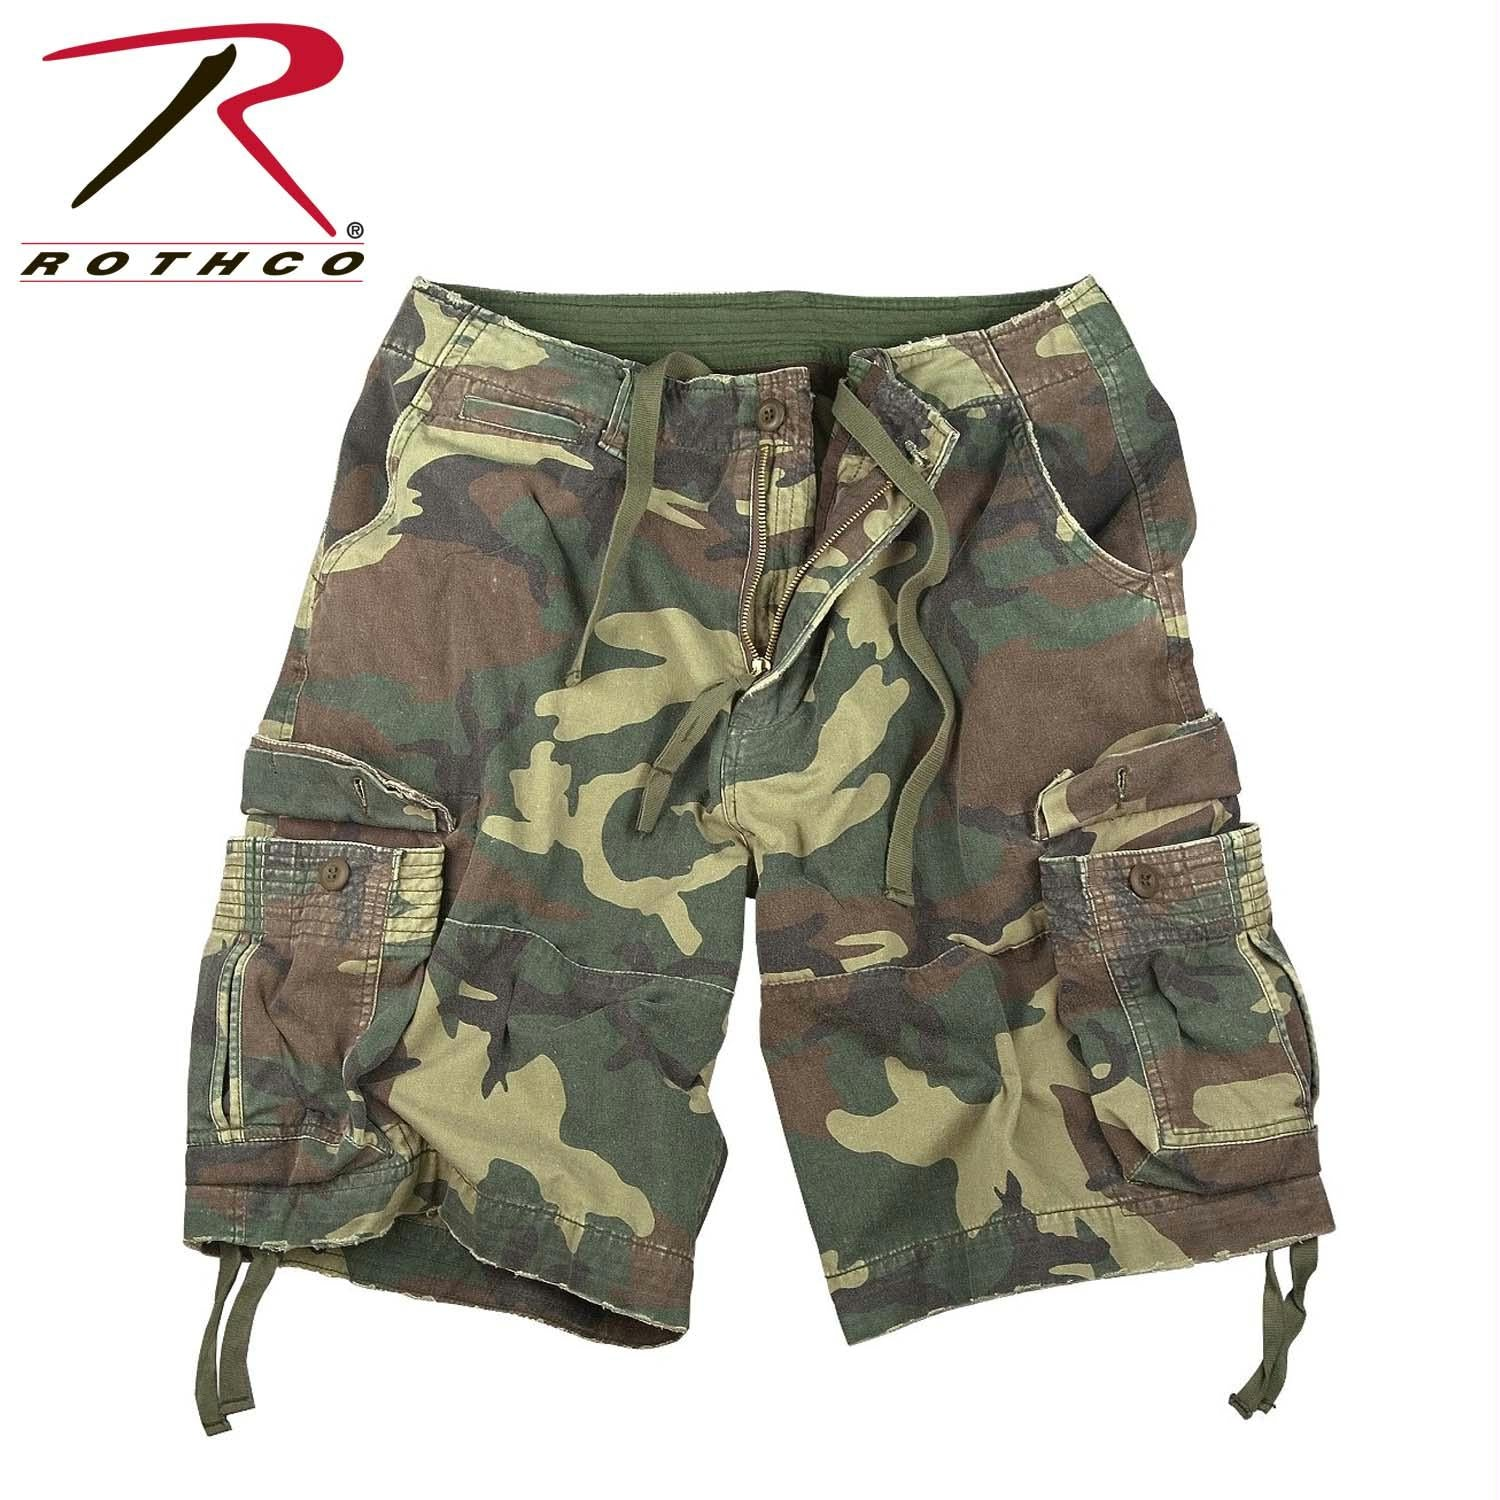 Rothco Vintage Camo Infantry Utility Shorts - Woodland Camo / XS